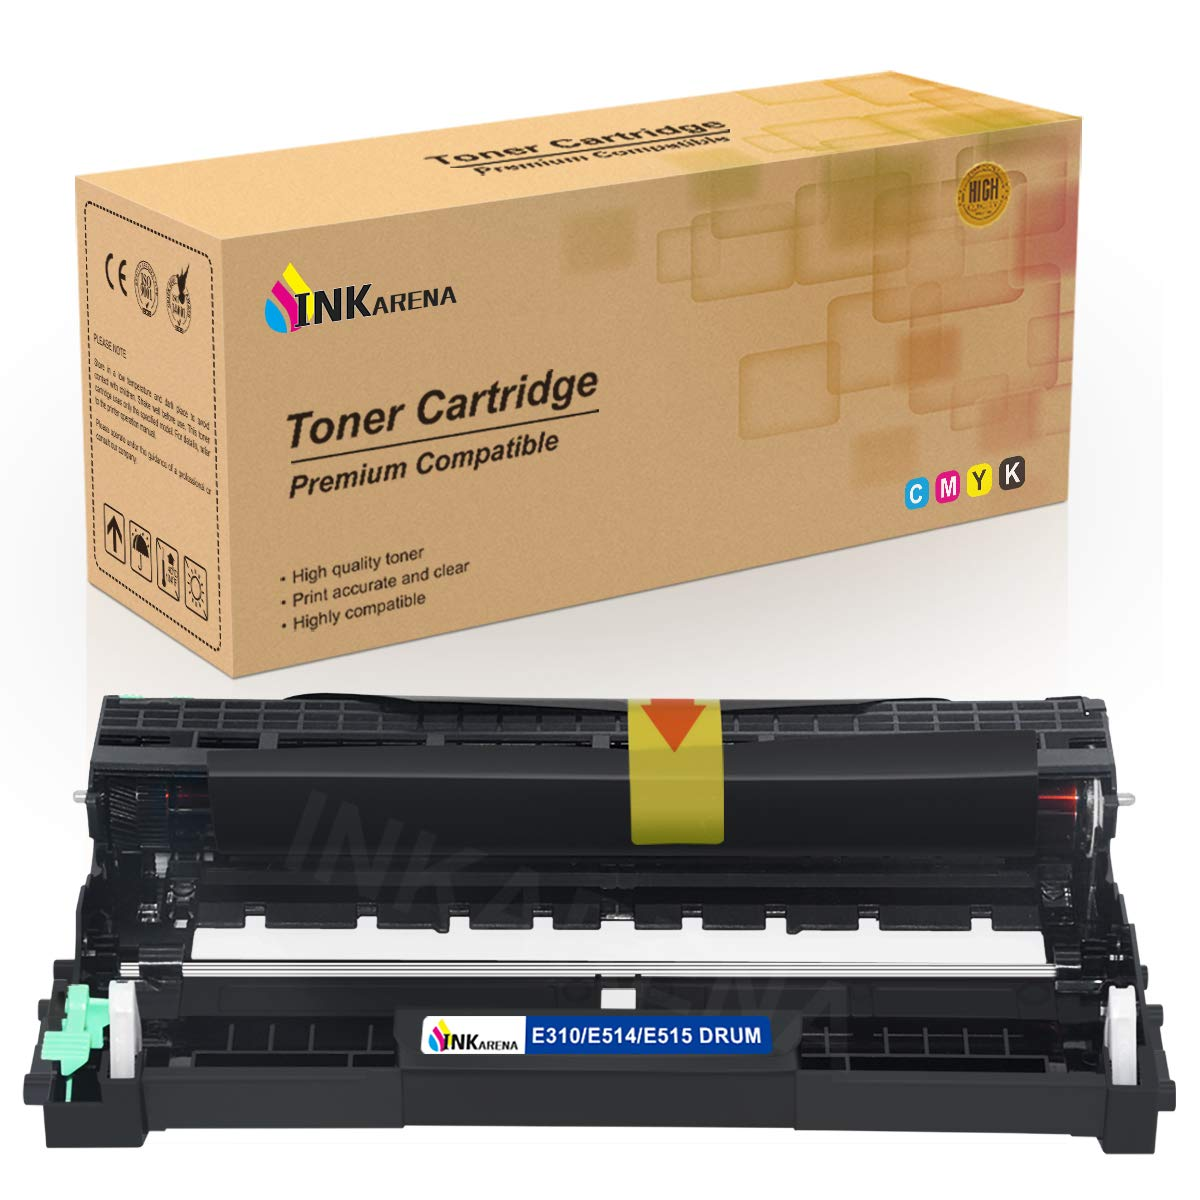 E310 E514 E515 Drum Unit Cartridge Replacement for Dell E310dw E514dw E515dw E515dn Printer Toner Cartridge (High Yield 12,000 Pages, 1 Pack) by ...